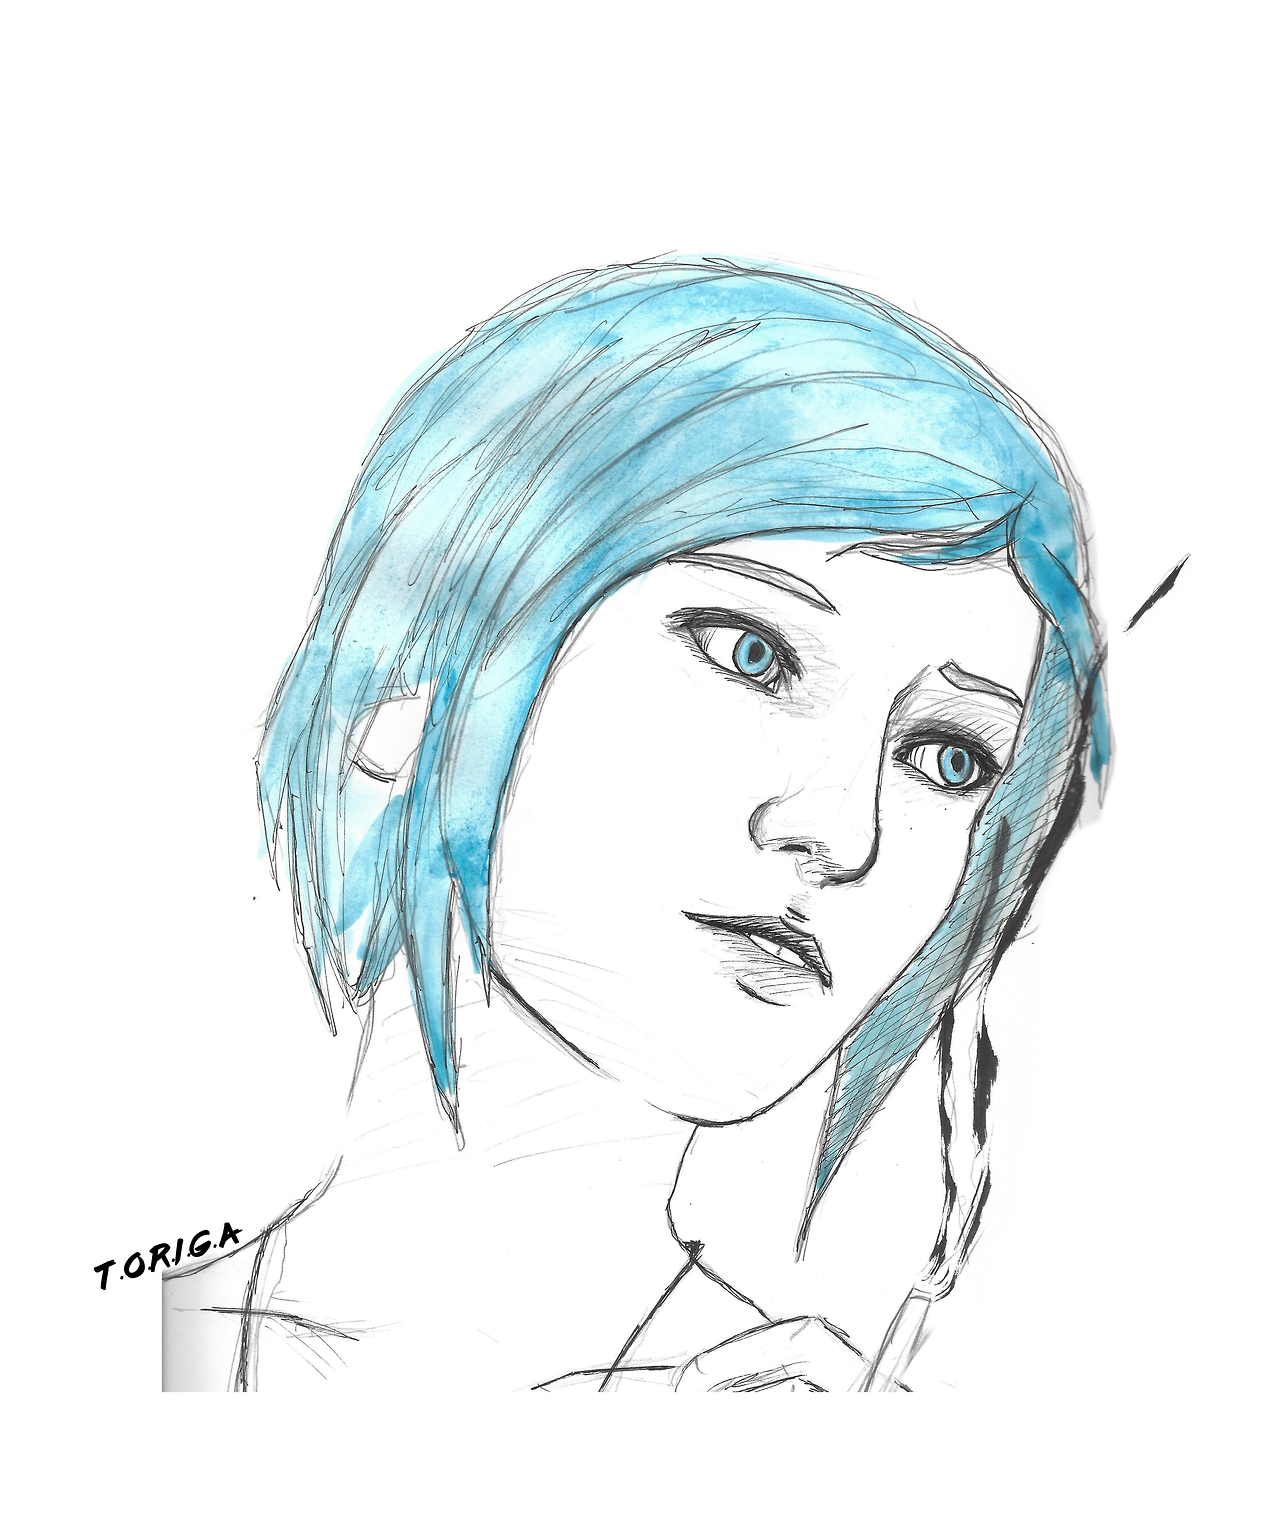 yfm1xeXkm1vz42ouo1_1280.png - Life is Strange: Before the Storm